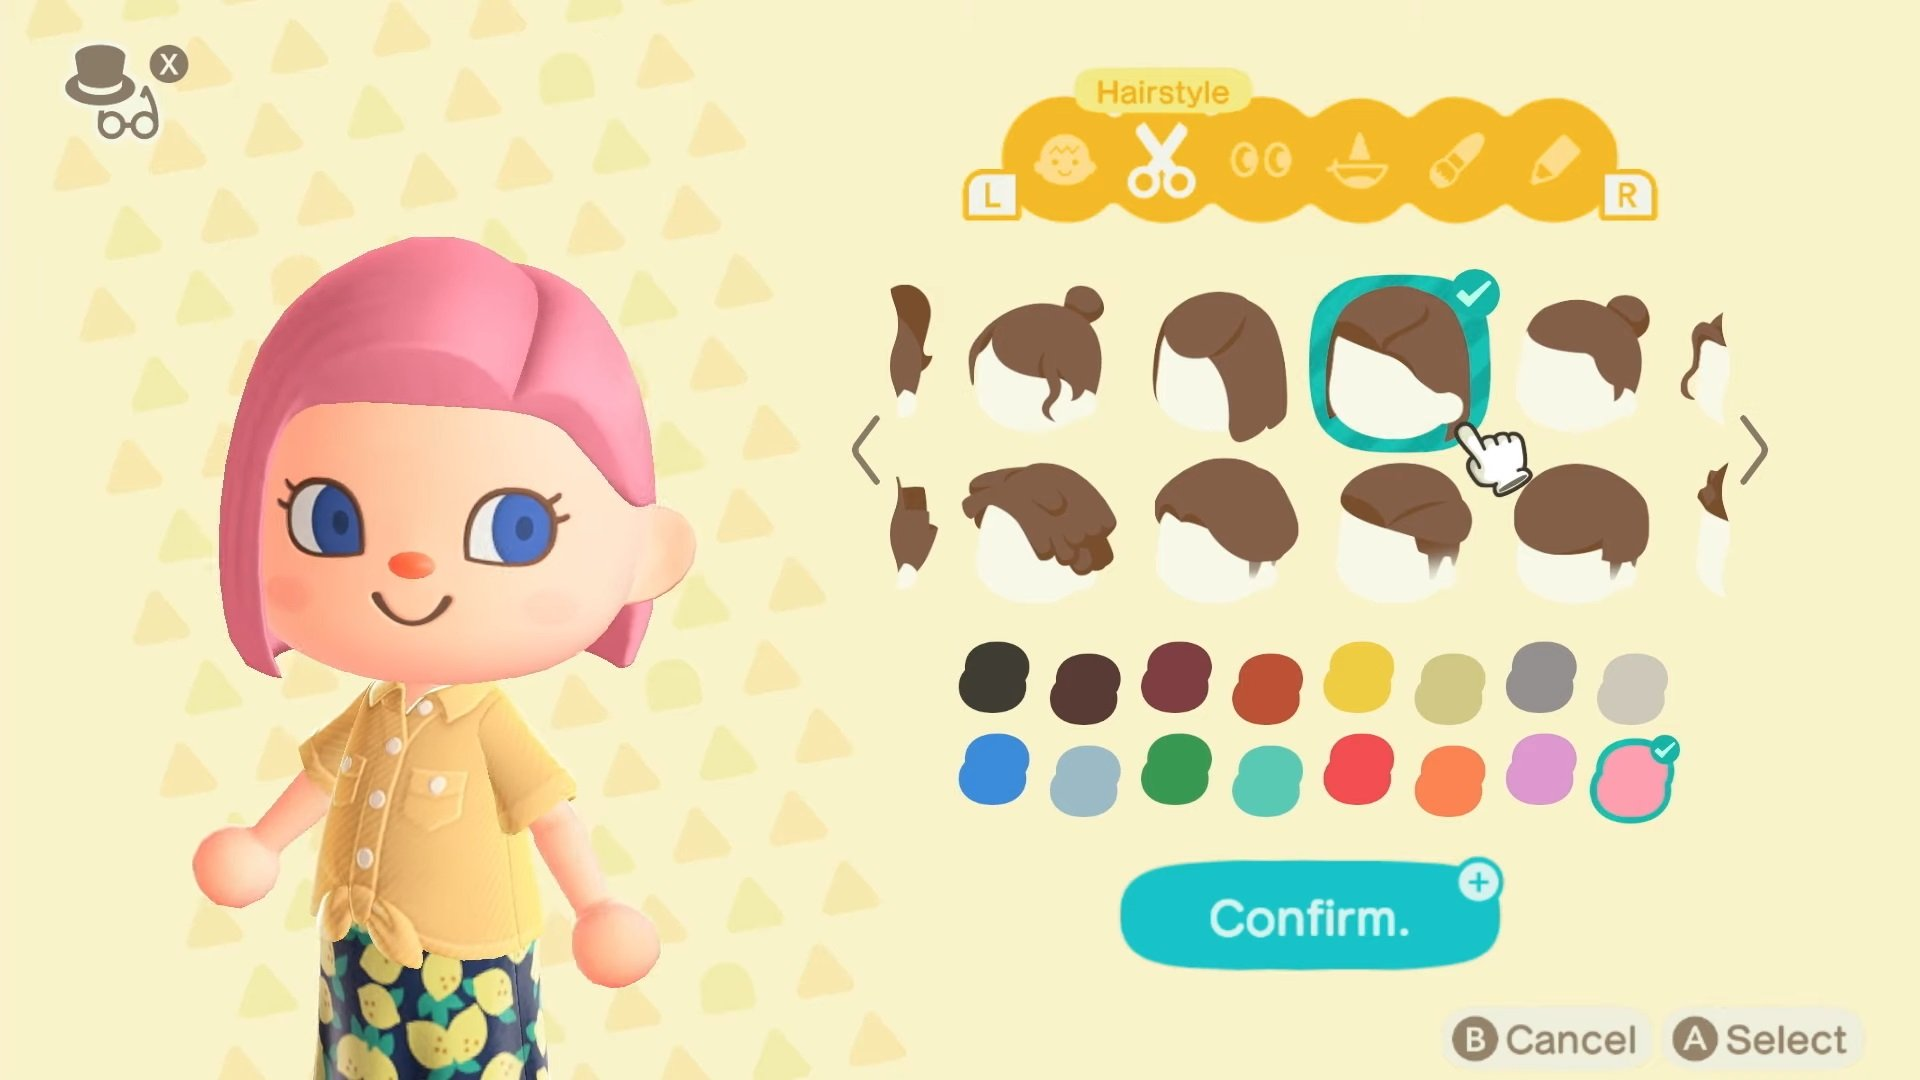 How to buy outfits in Animal Crossing: New Horizons